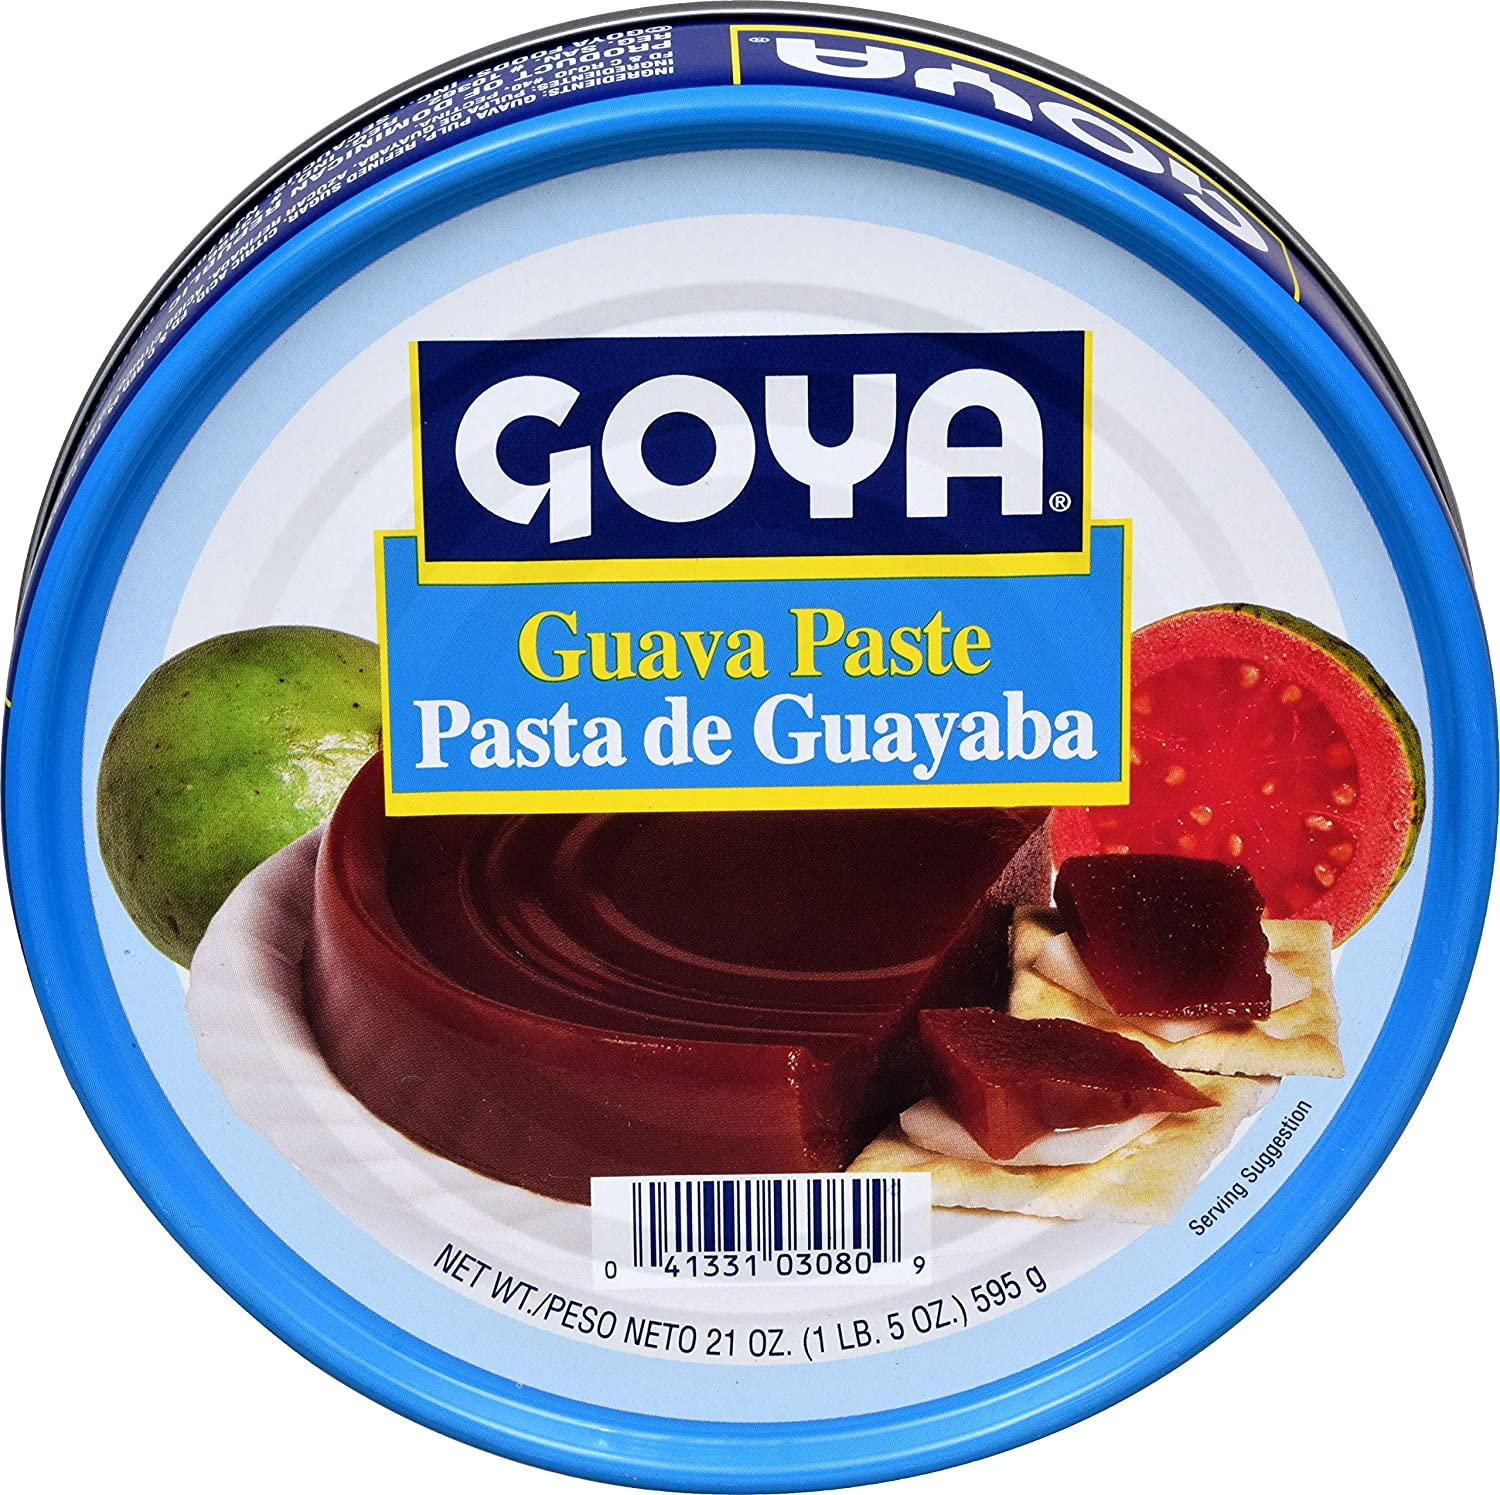 B008OFTIAQ Goya Foods Guava Paste, 21-Ounce (Pack of 24) A1oeSCCivwL._SL1500_